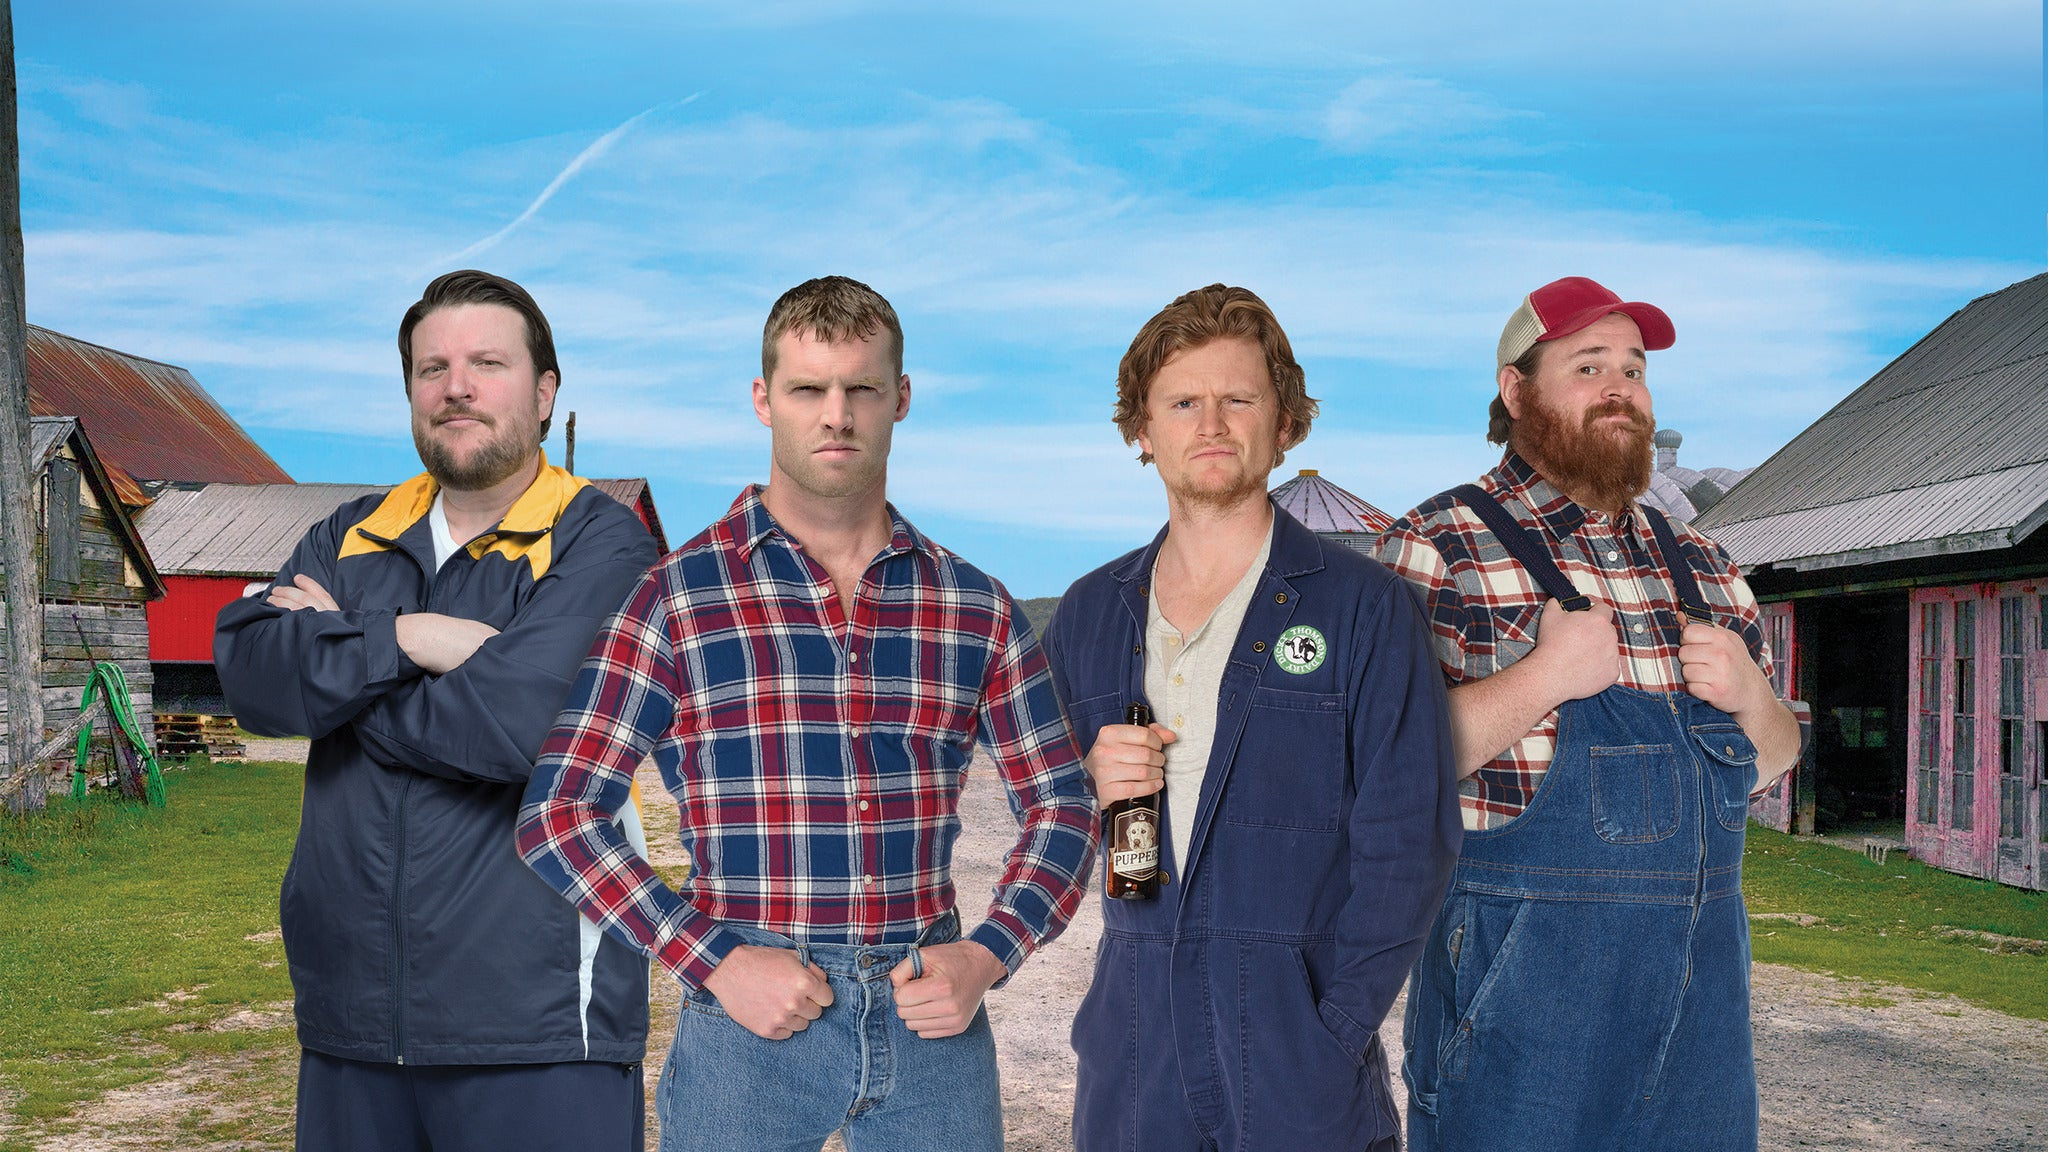 LETTERKENNY LIVE! at Pantages Theatre